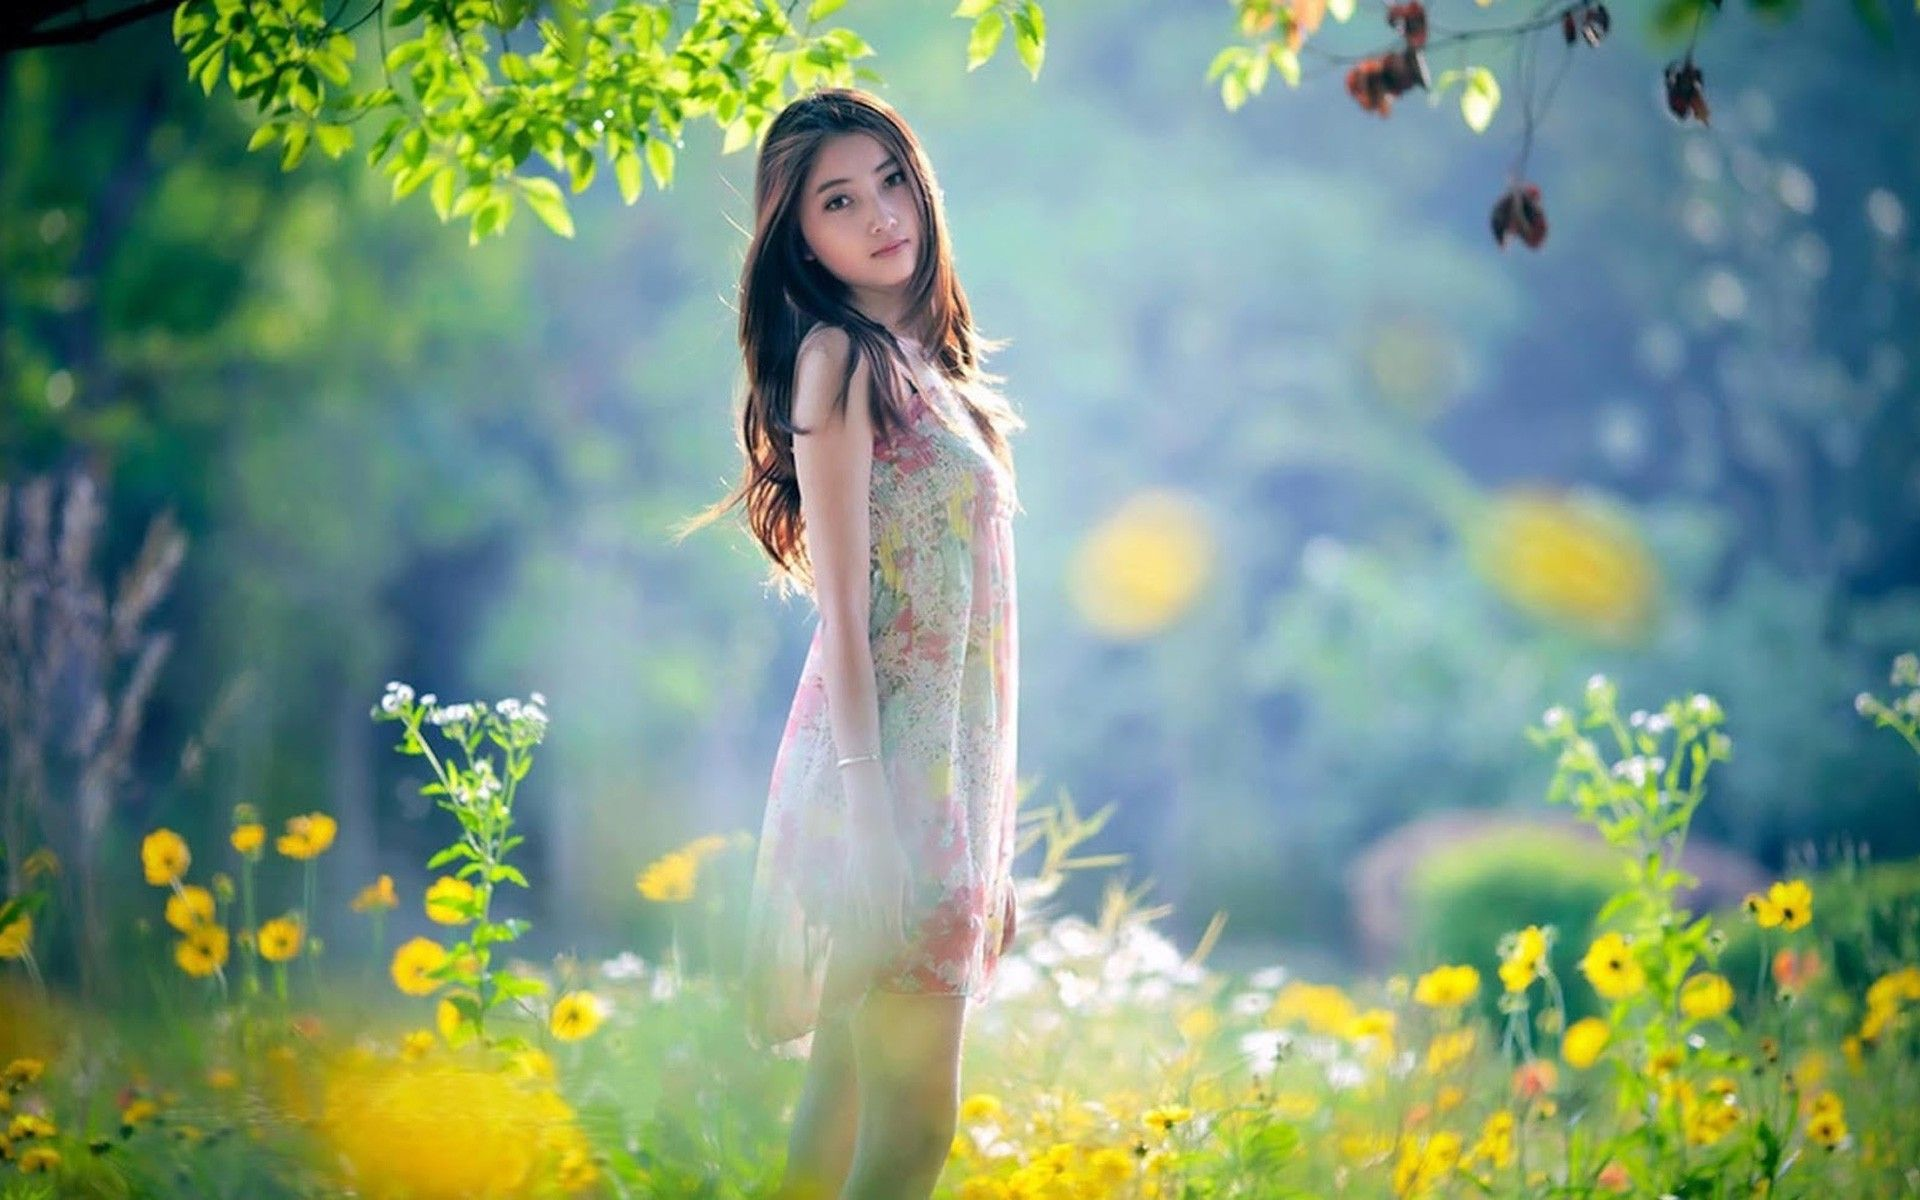 Hd wallpaper cute girl - Find This Pin And More On Girls Wallpapers